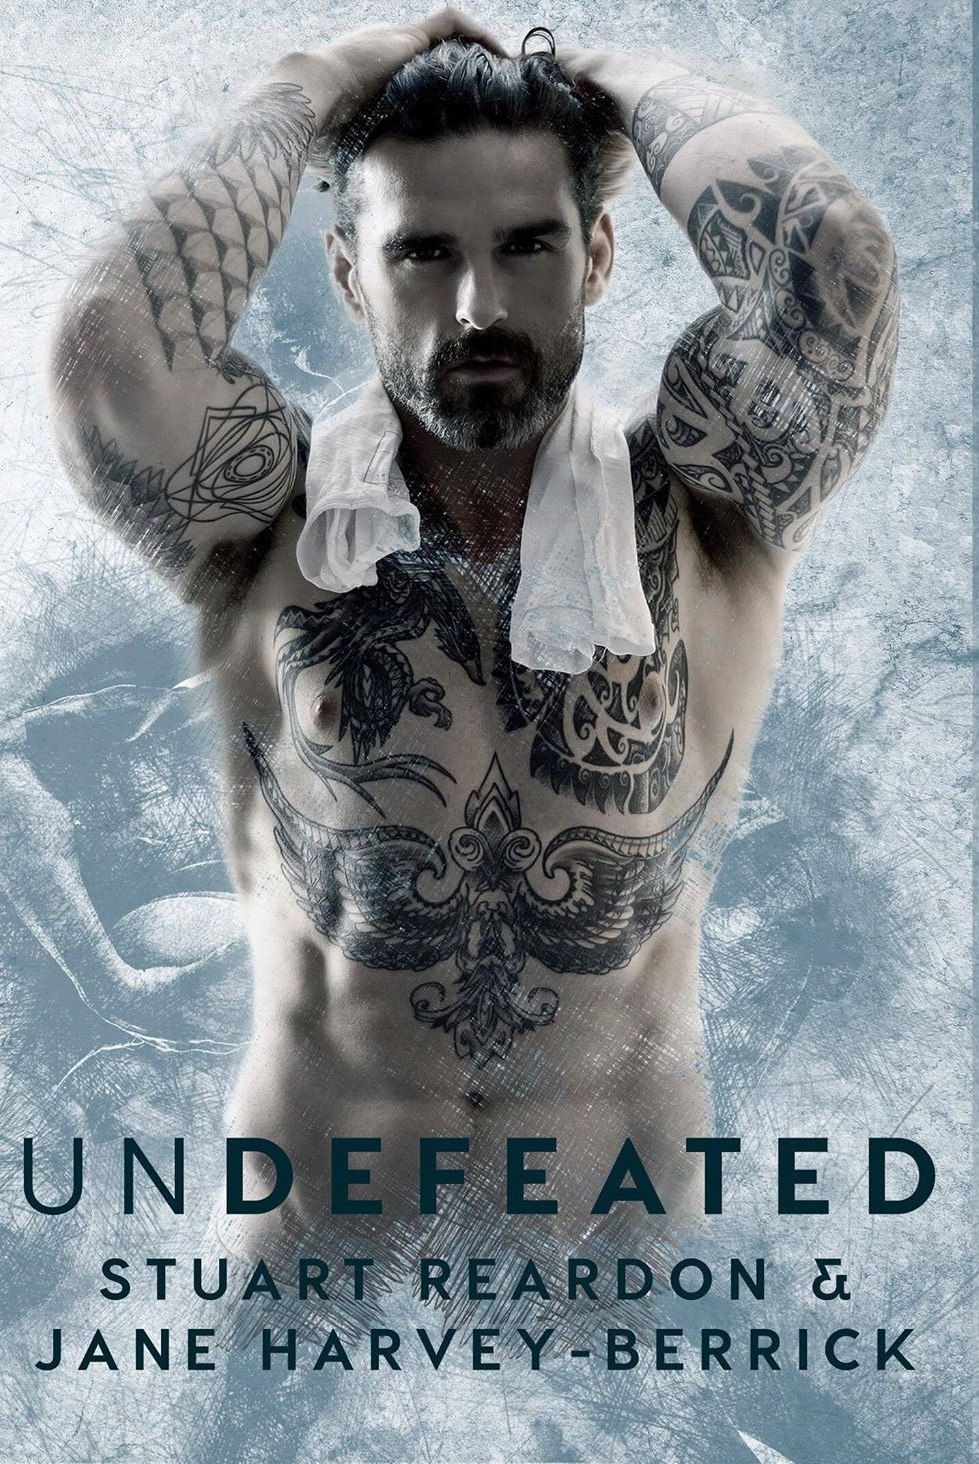 Undefeated by Stuart Reardon and Jane Harvey-Berrick